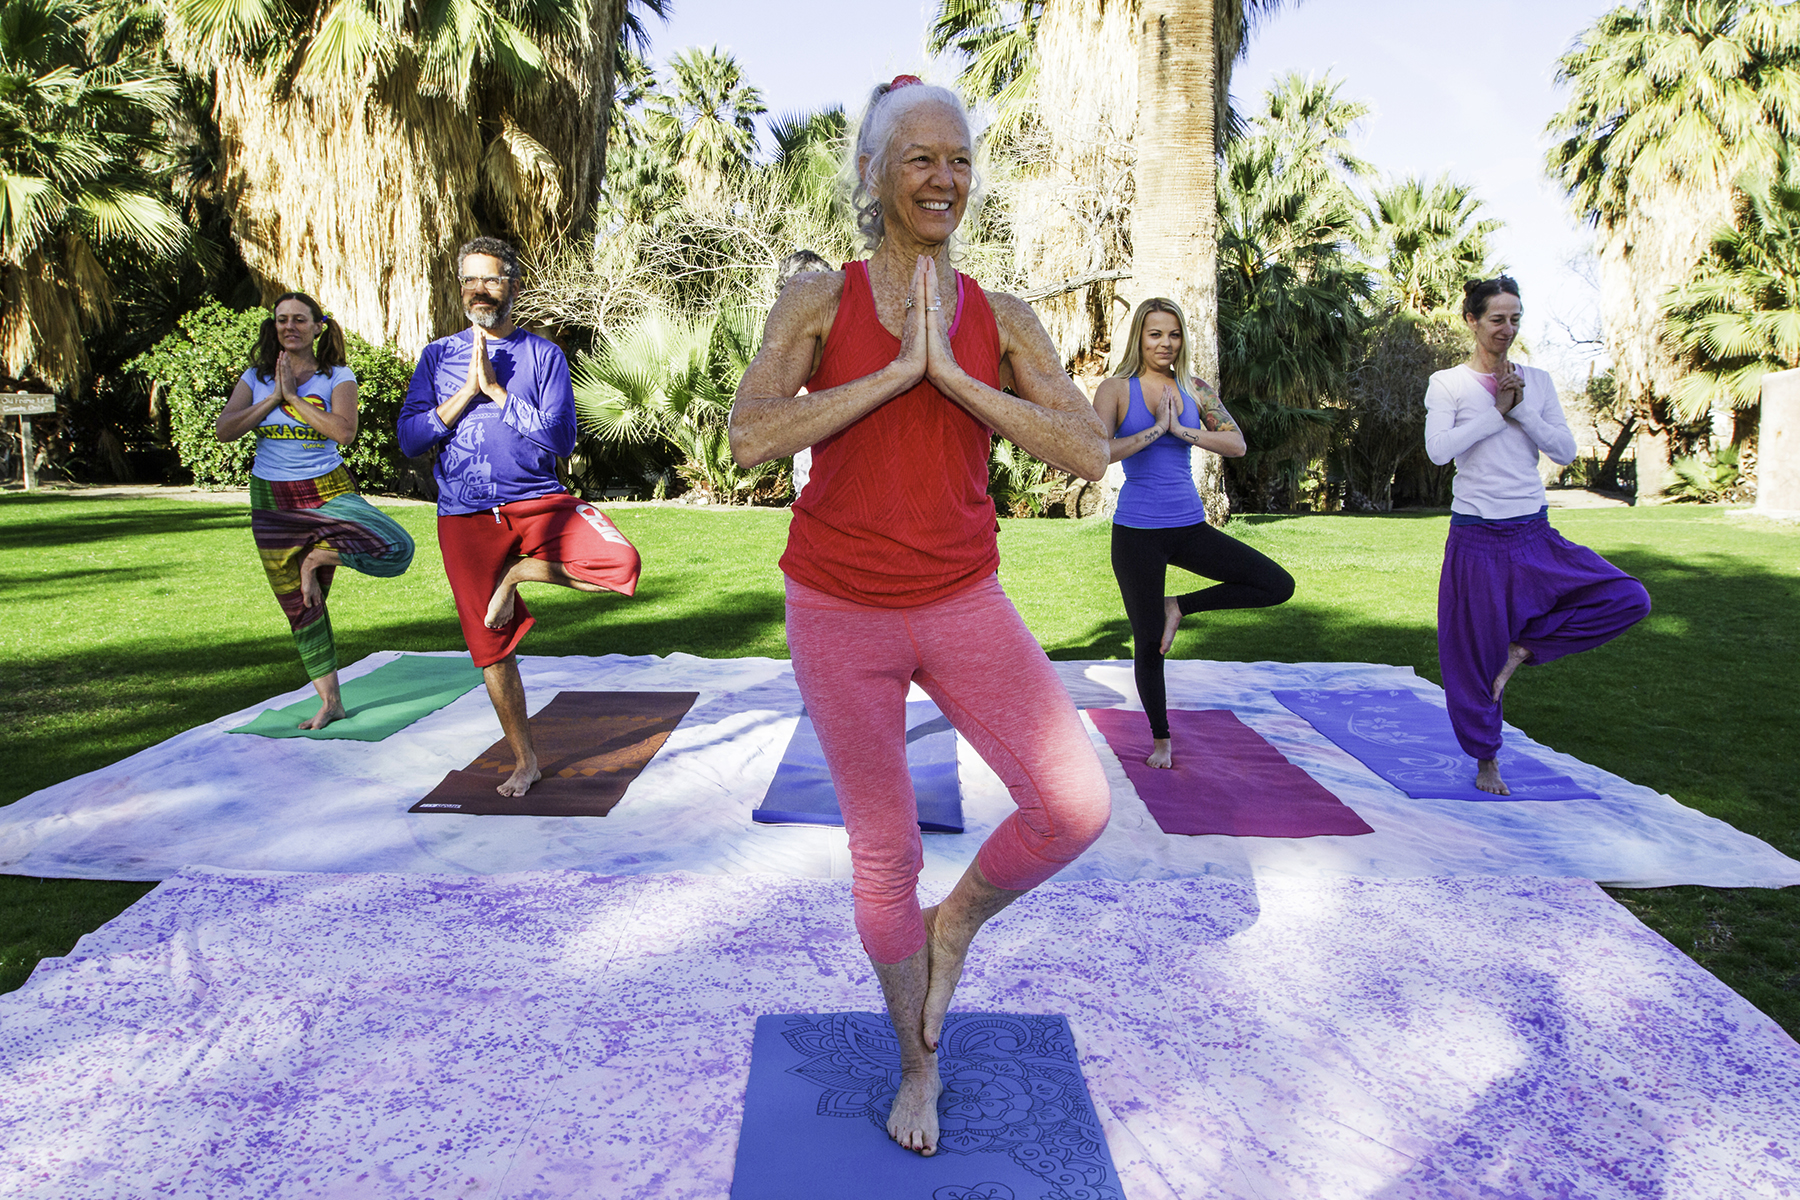 Outdoor yoga at the 29 Palms Inn with Karen Tracy